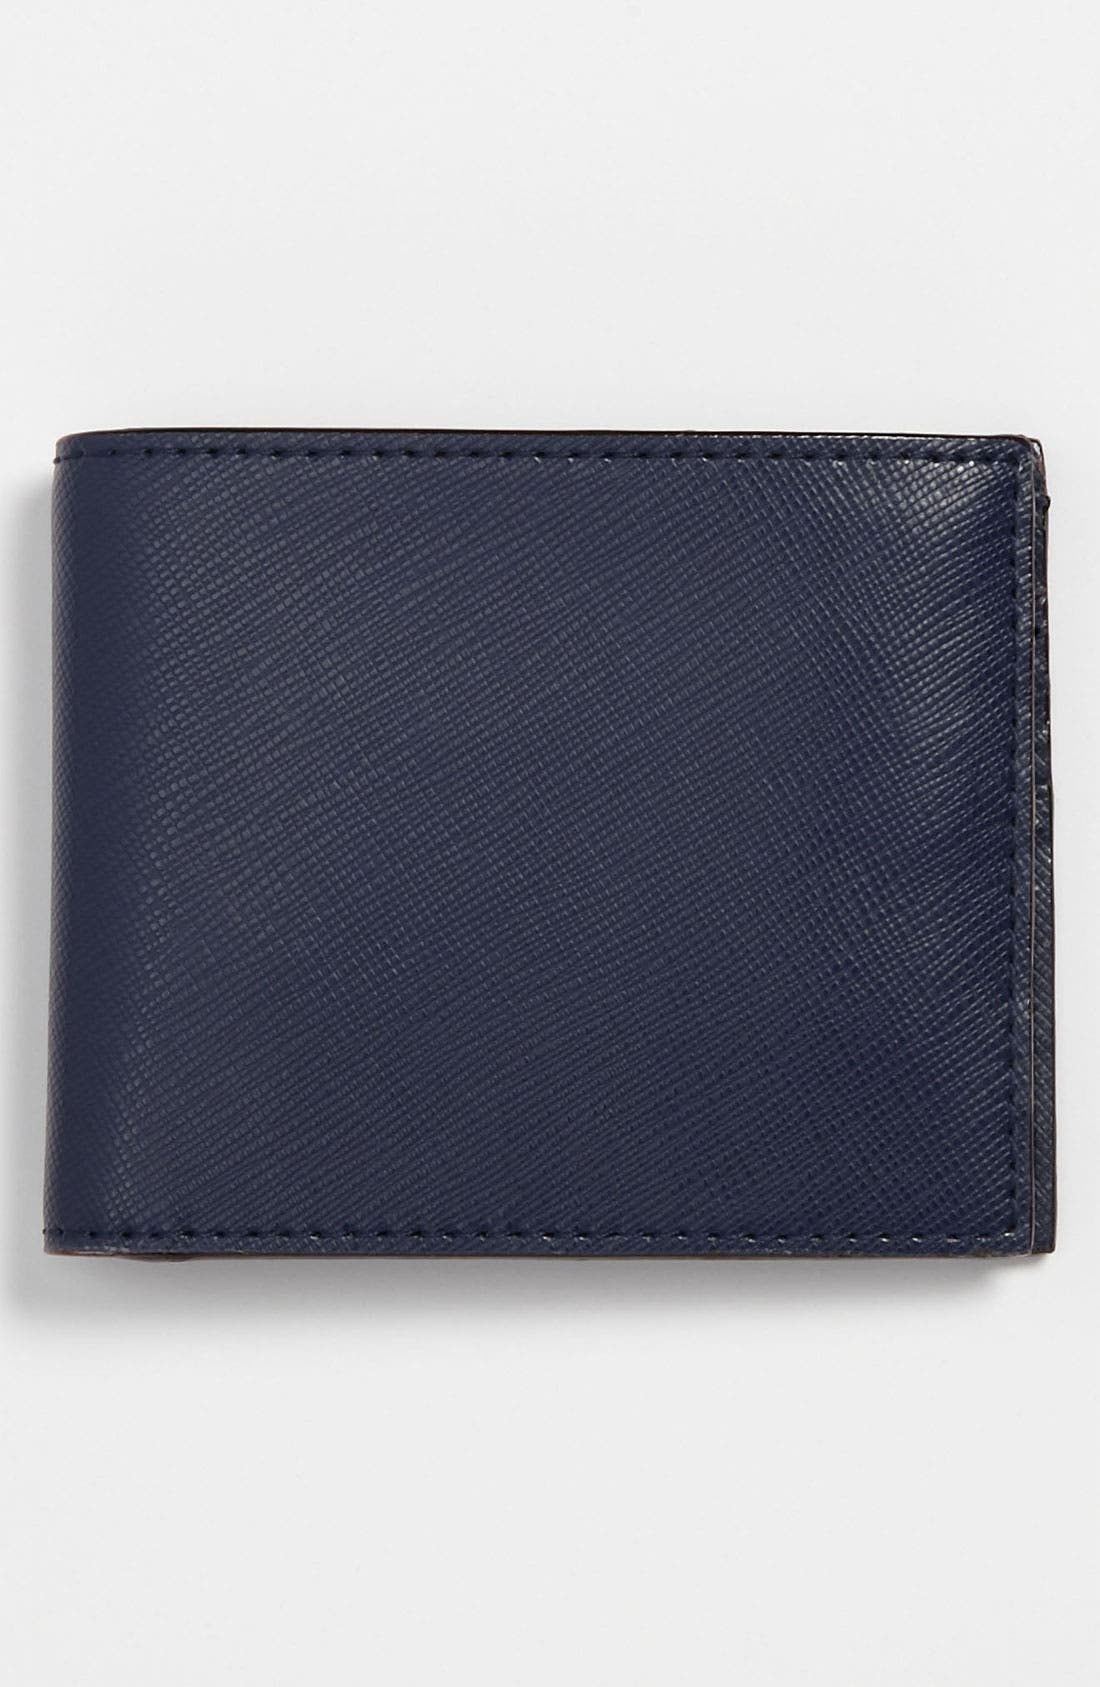 Main Image - Jack Spade Crosshatched Leather Billfold Wallet